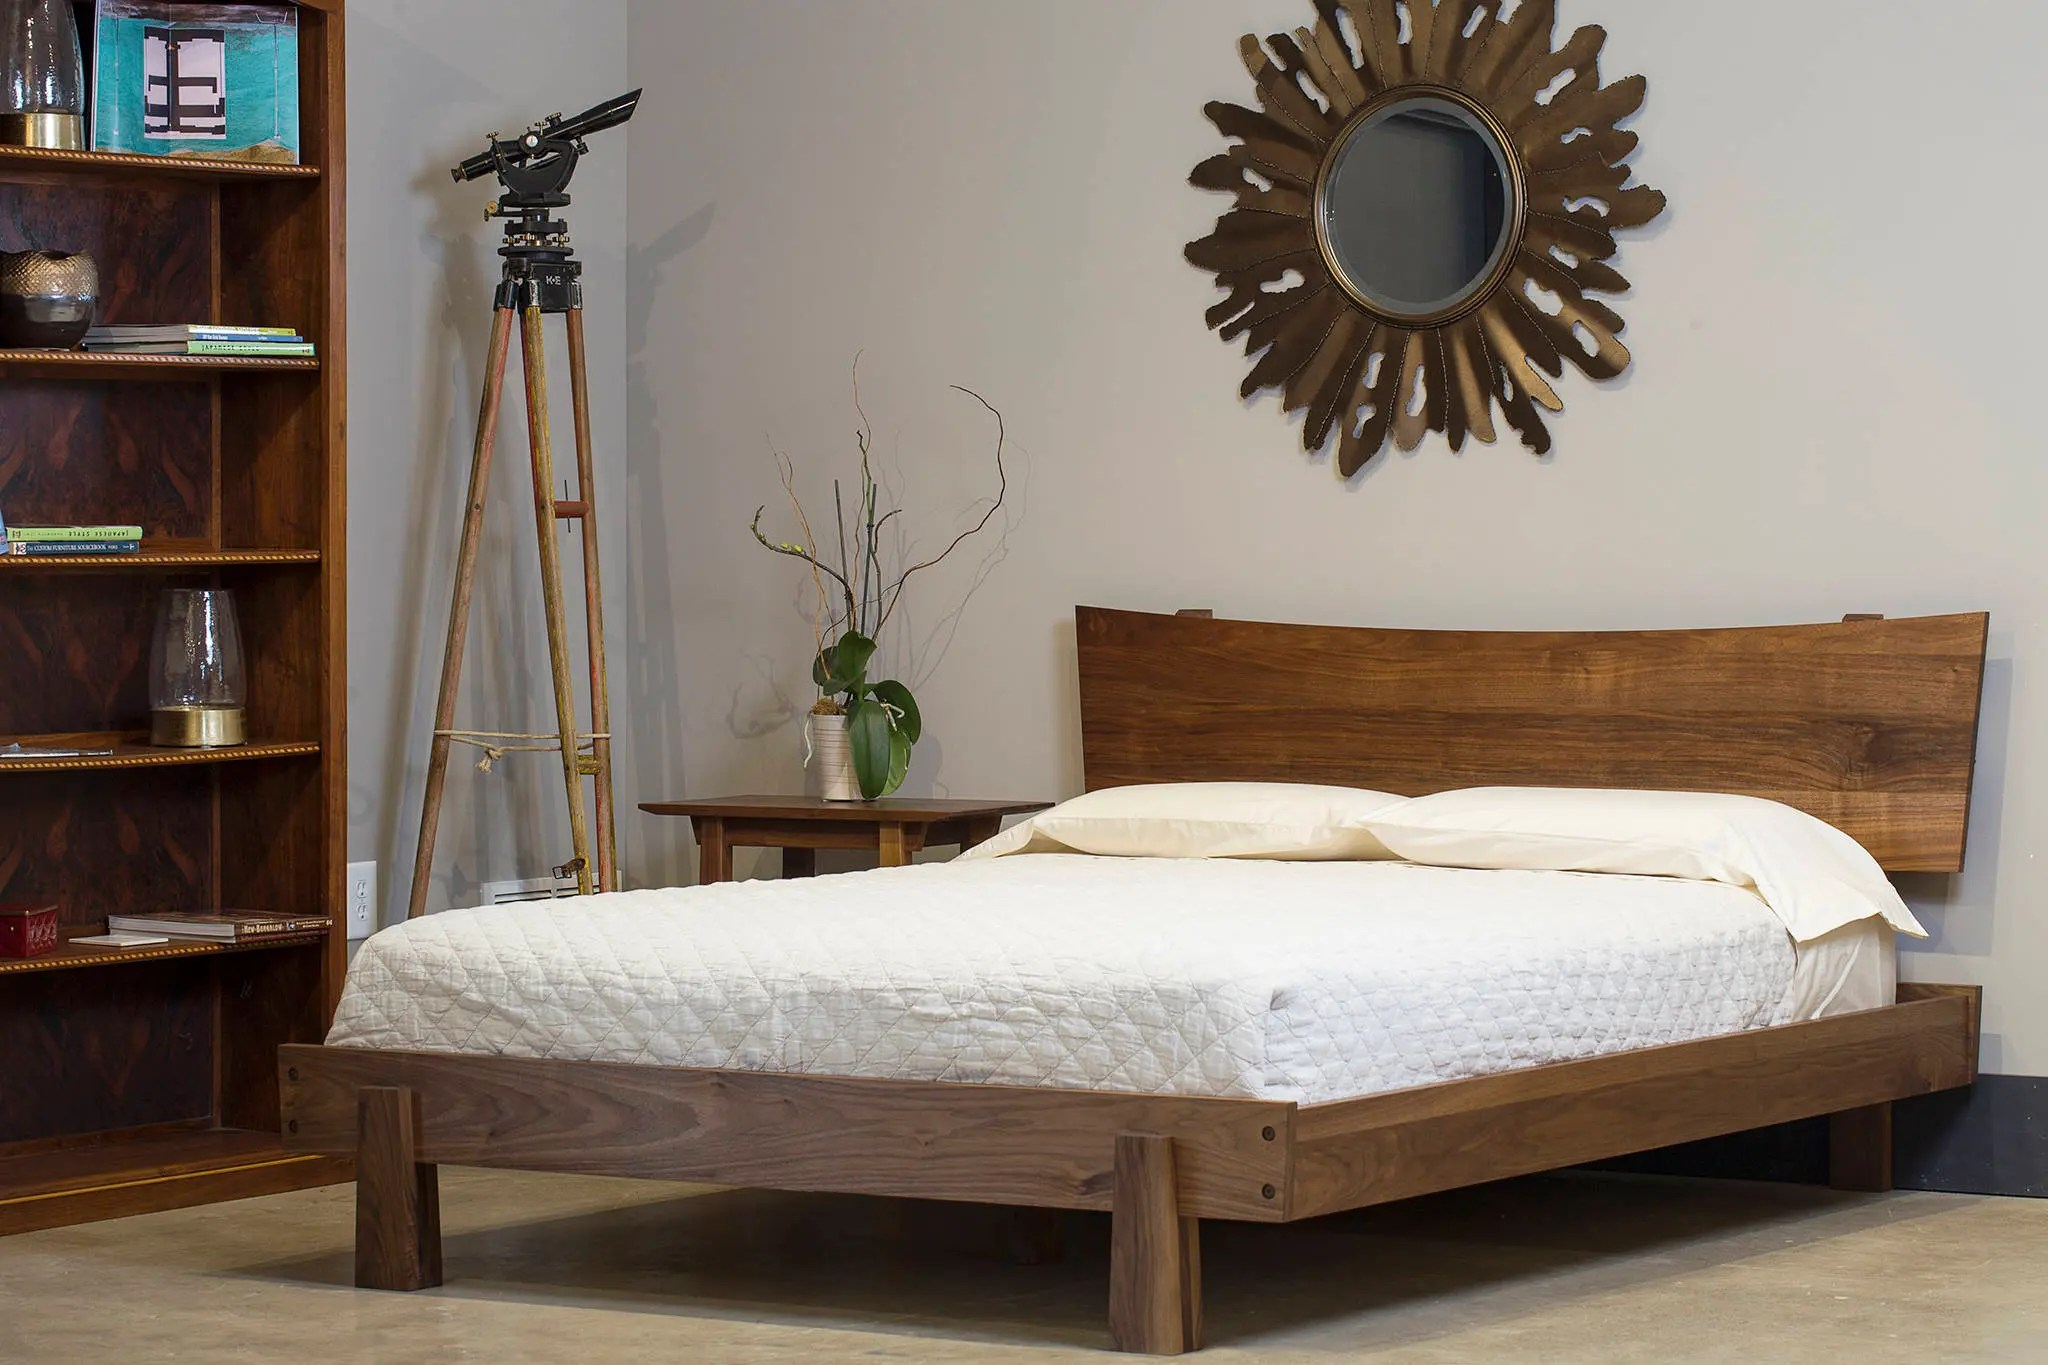 Japanese Inspired Beds Solid Wood Bed Frame Headboard Horizon Bed